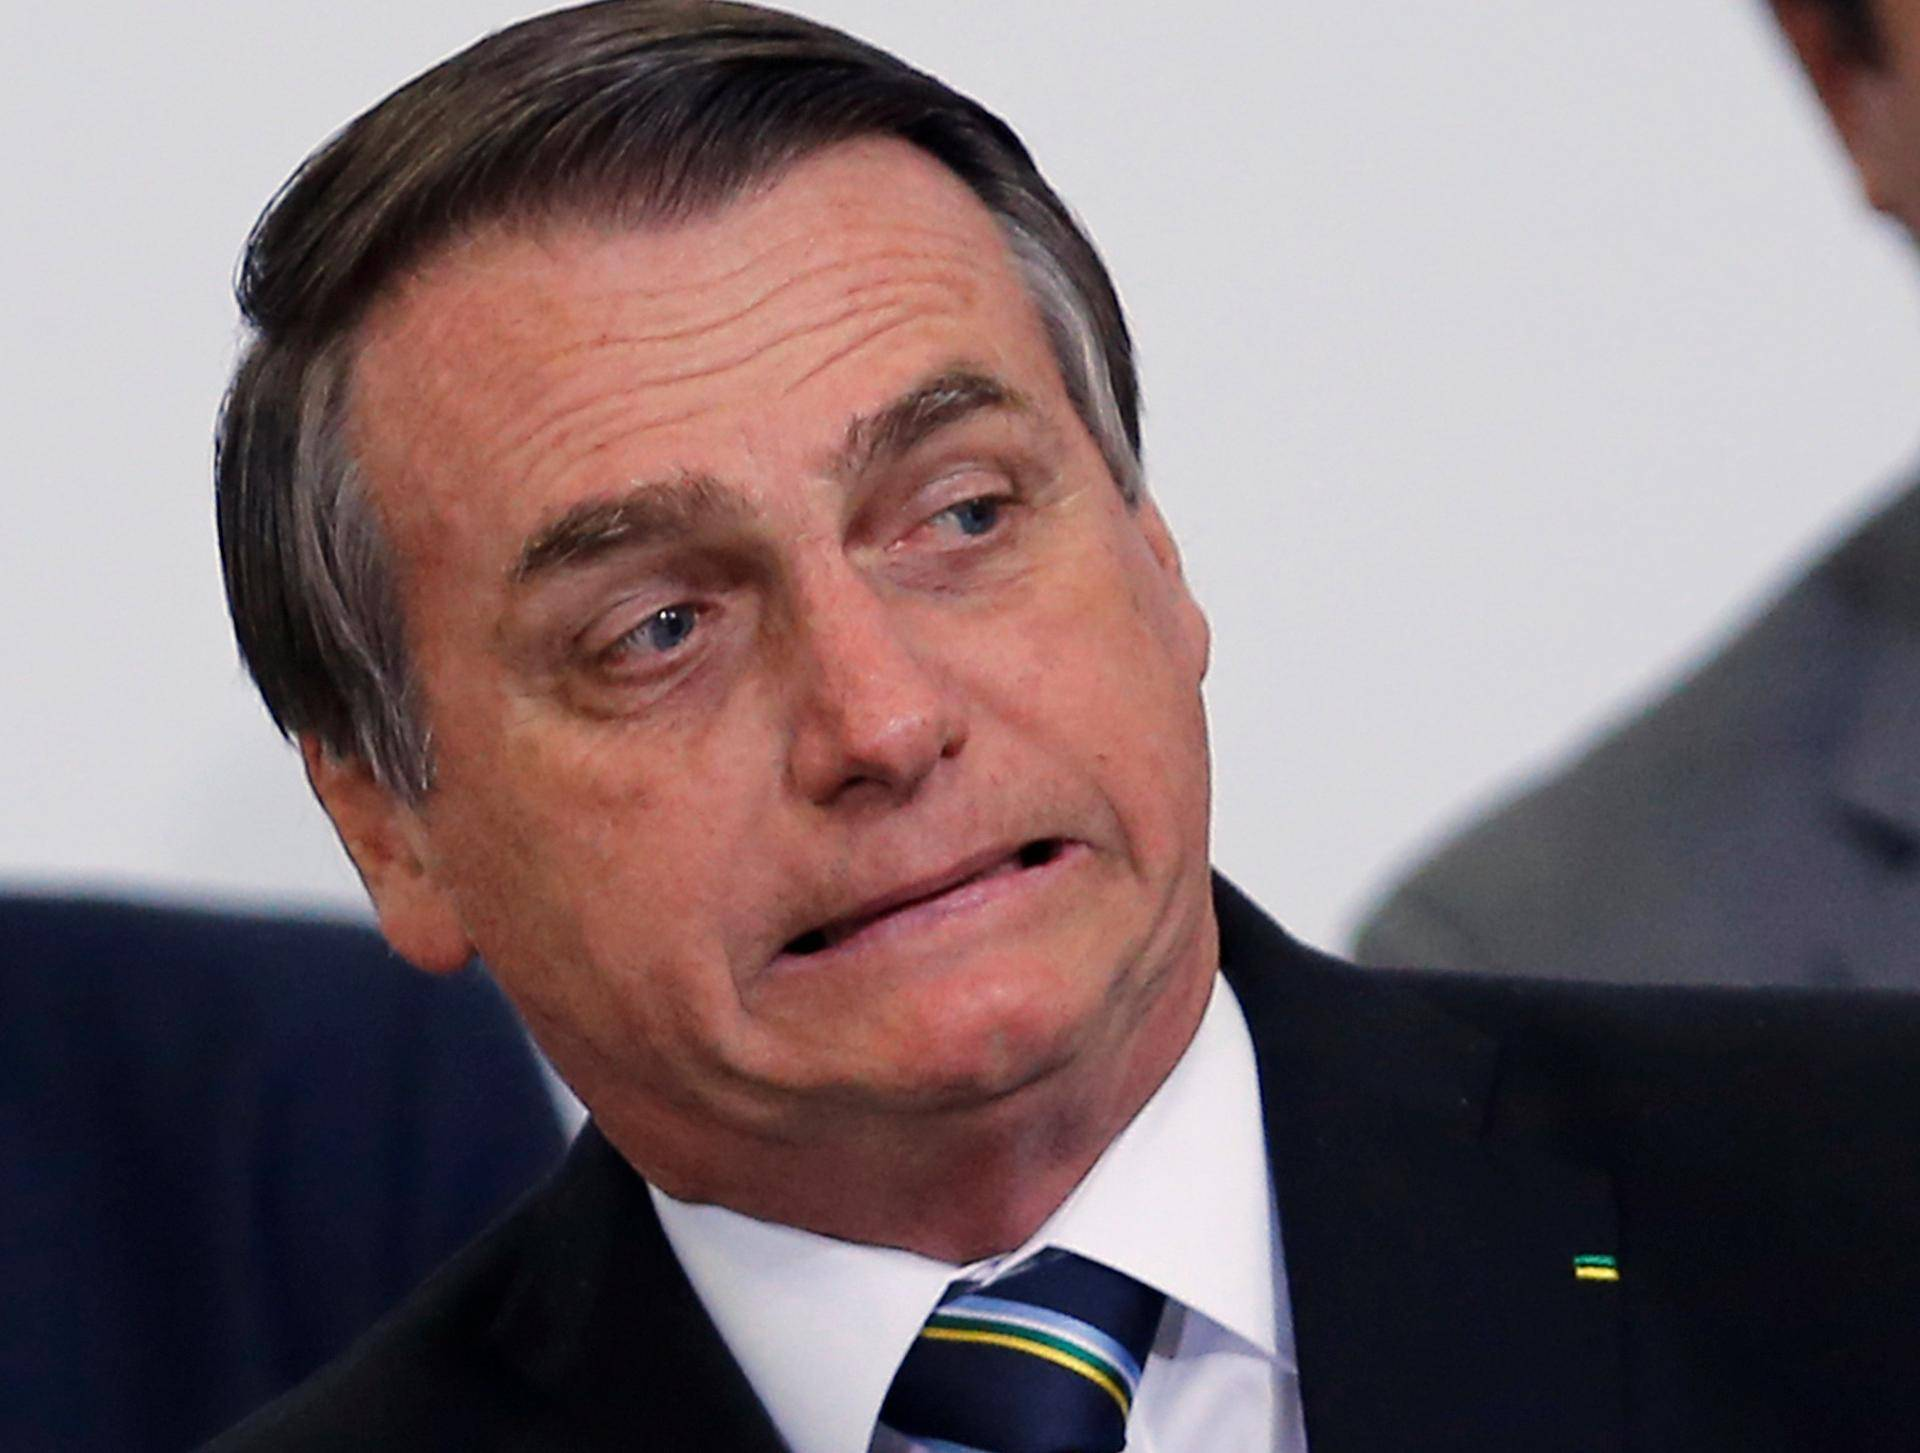 Brazil's President Jair Bolsonaro attends the ceremony marking his 200 days in office at the Planalto Palace in Brasilia